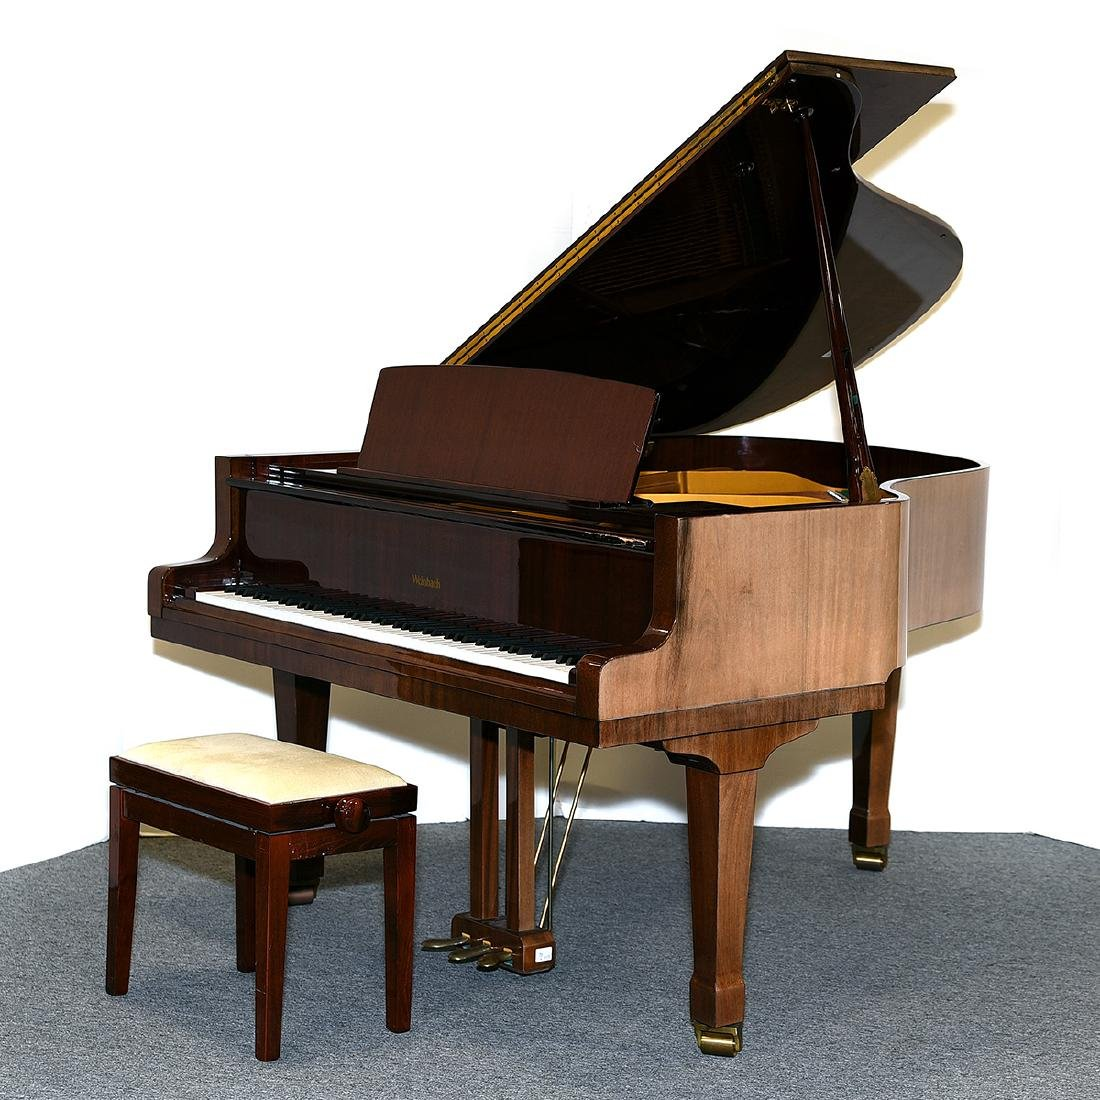 Weinbach Mahogany Cased Grand Piano with Bench, Czech